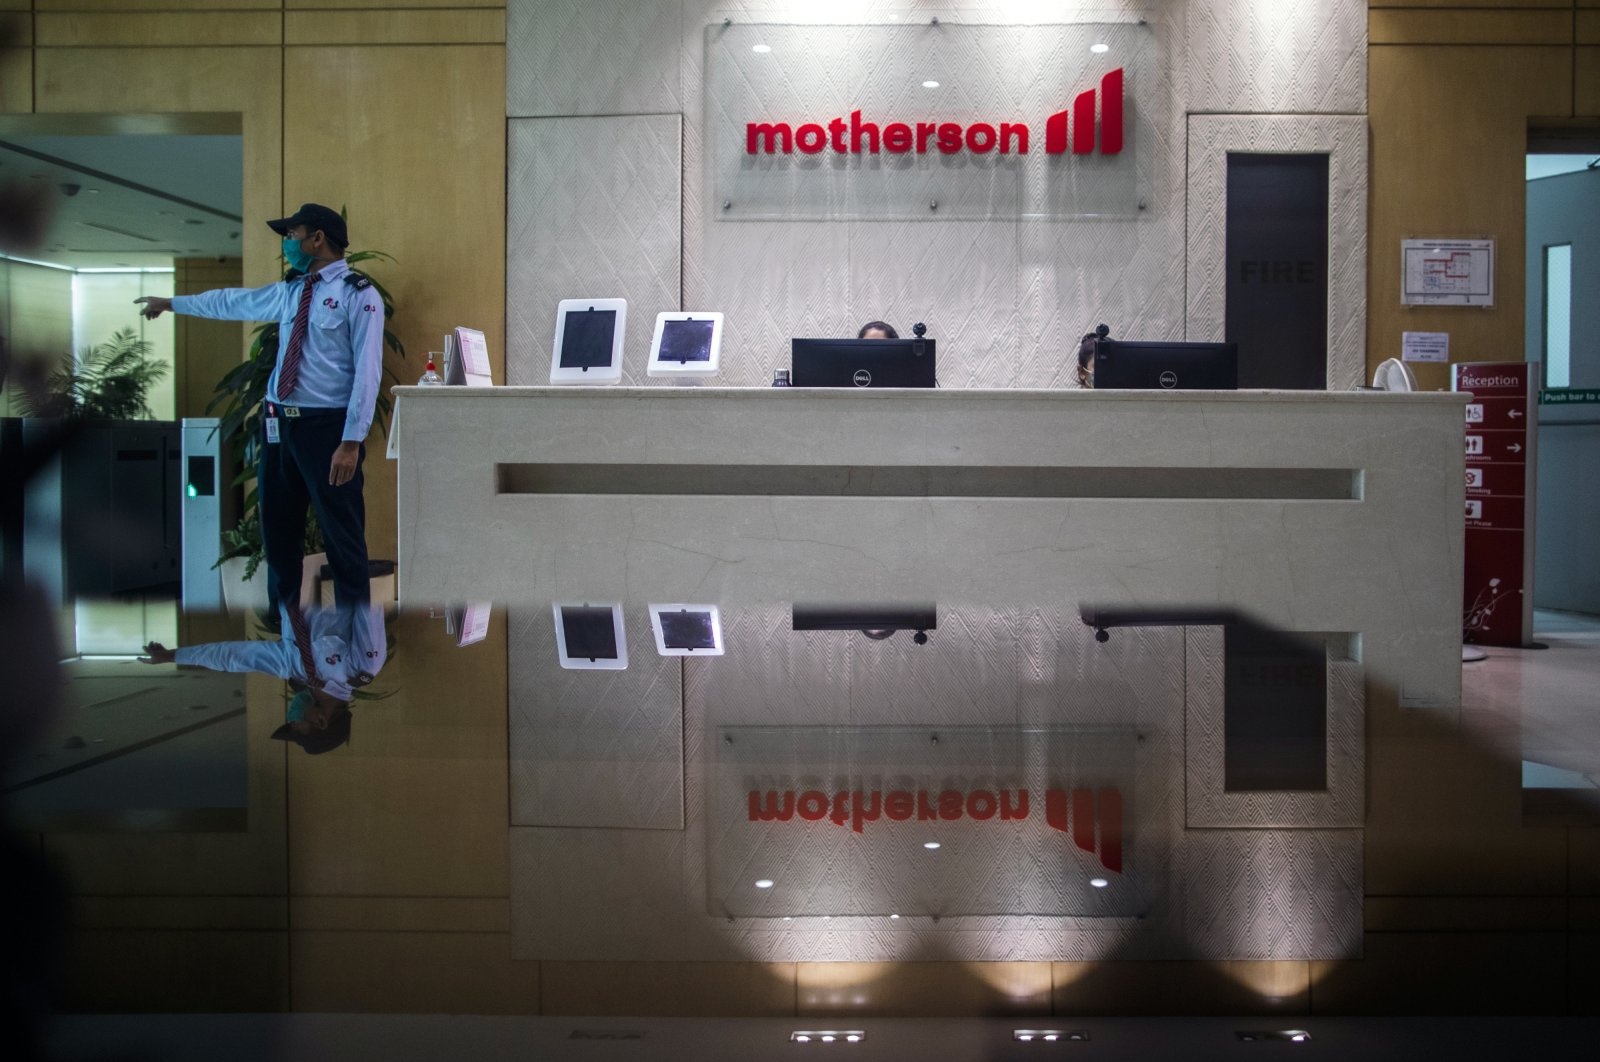 Employees work at the reception area of the Motherson Group head office in Noida, Uttar Pradesh, India, Aug. 17, 2020.  (Getty Images)